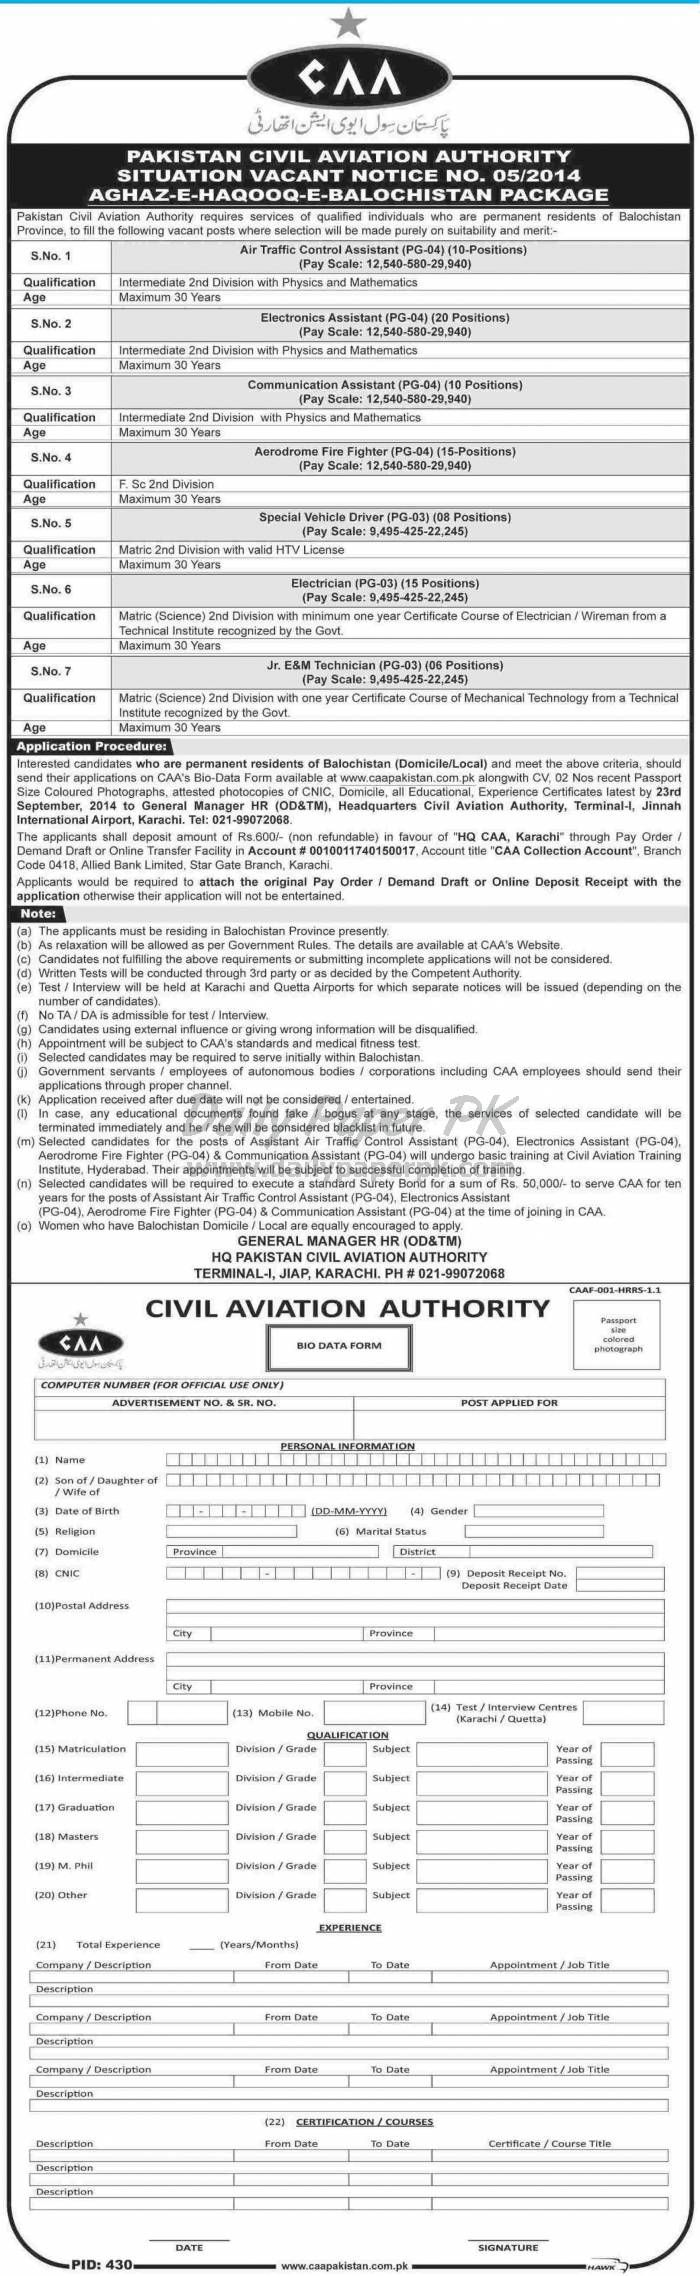 Situation Vacant Notice - Job Opportunities in Pakistan Civil Aviation Authority #CAA For #jobs detail and how to apply: #paperpk http://www.dailypaperpk.com/jobs/218738/situation-vacant-notice-job-opportunities-pakistan-civil-aviation-authority-caa